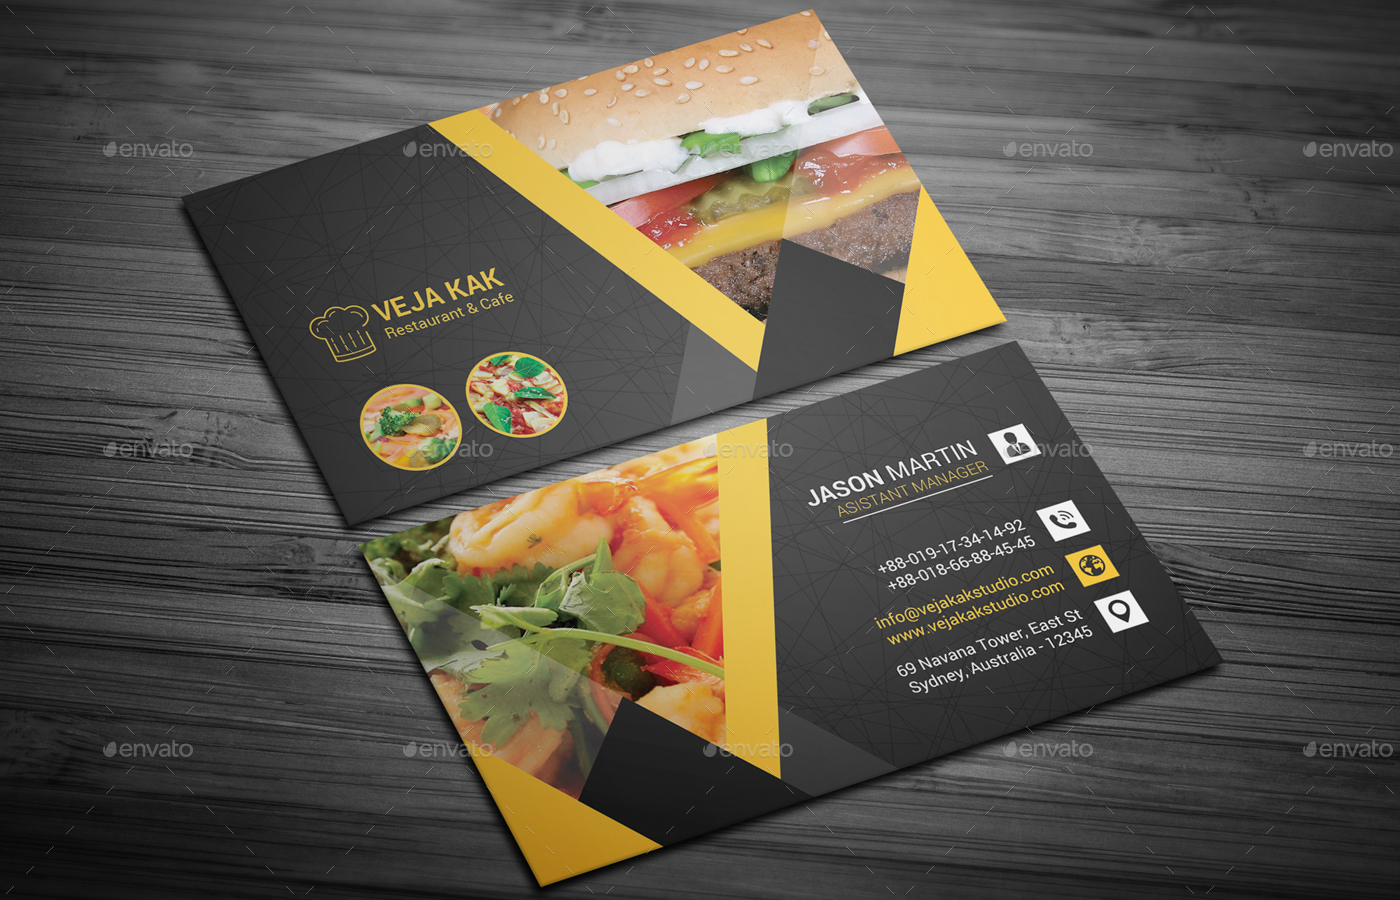 eatery business plan in philippines cards